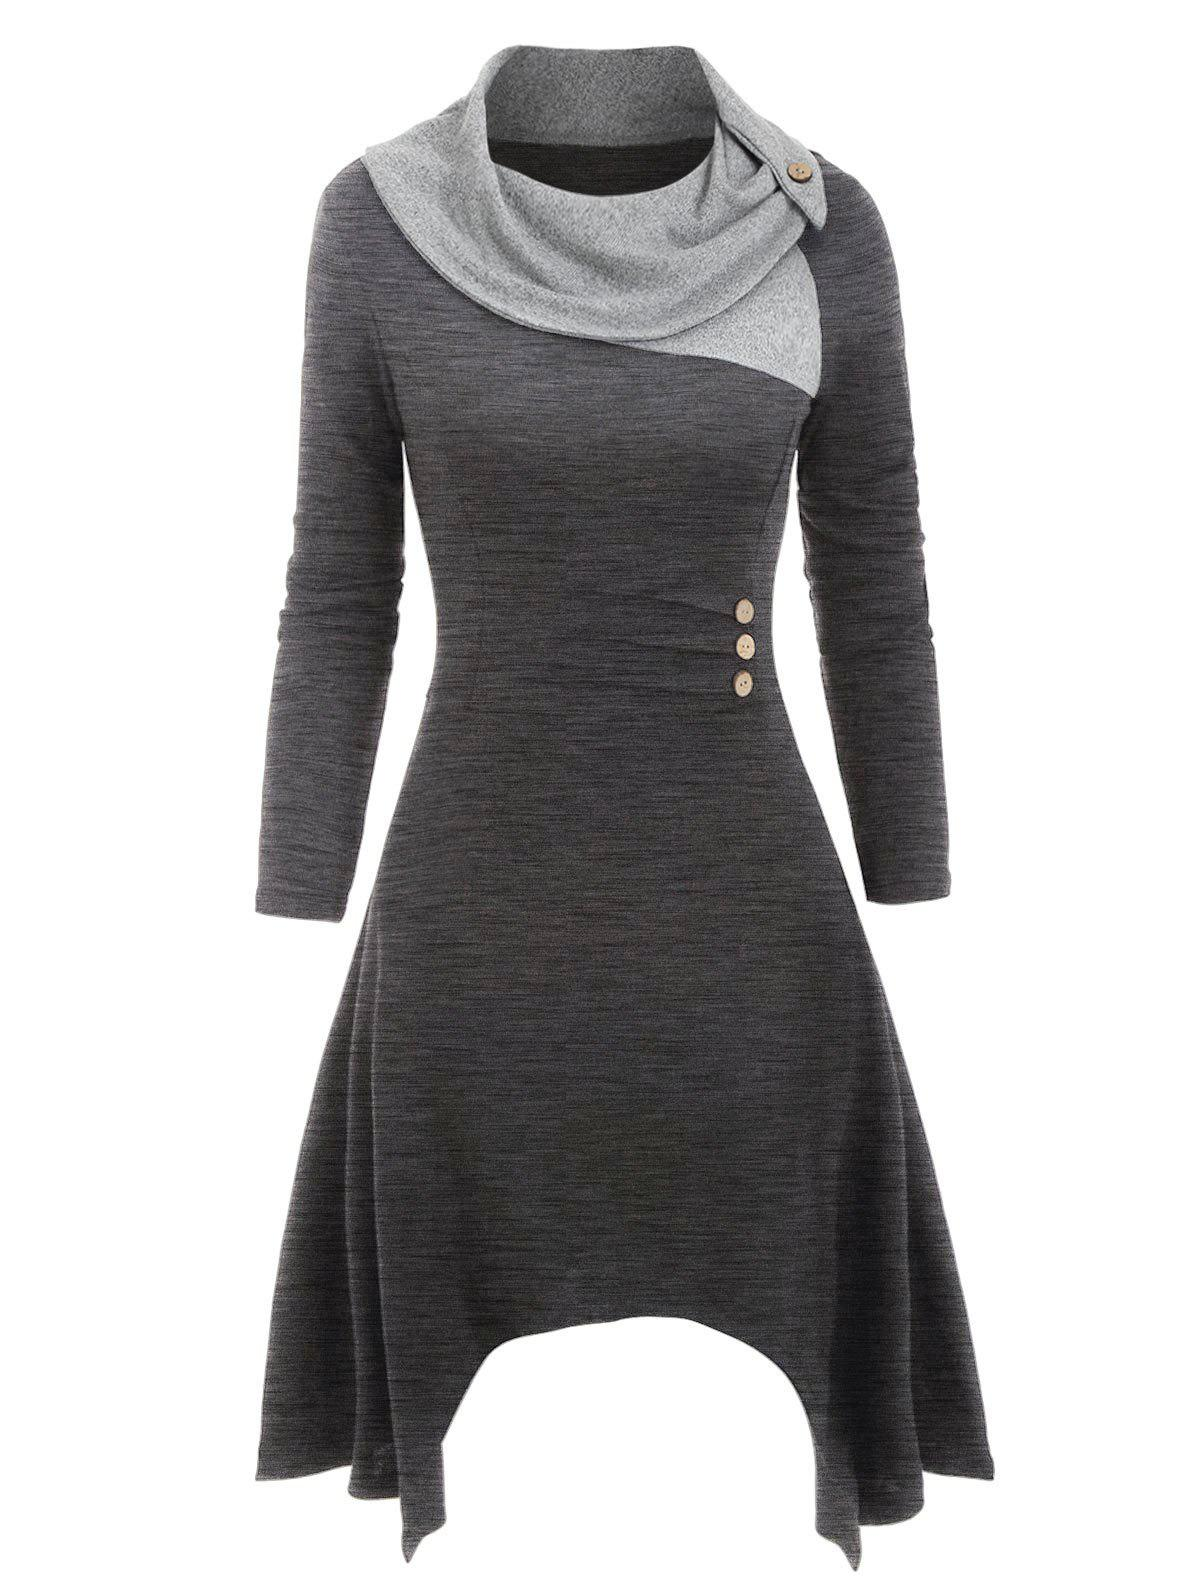 Cowl Neck Button Embellished Asymmetrical Knitted Dress - DARK GRAY 3XL